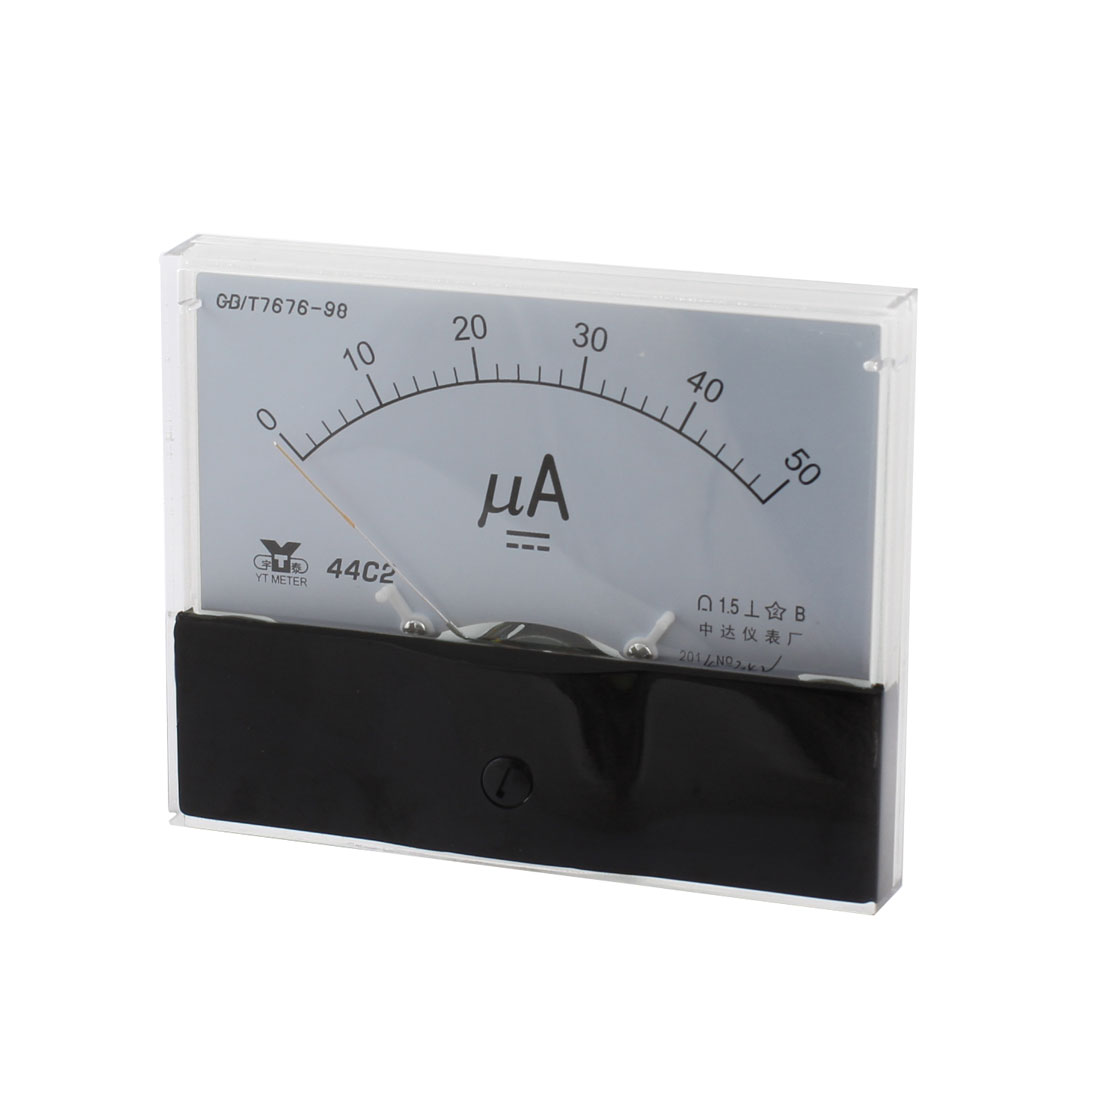 Analog Rectangle Panel 0-50uA Gauge DC Current Meter 44C2